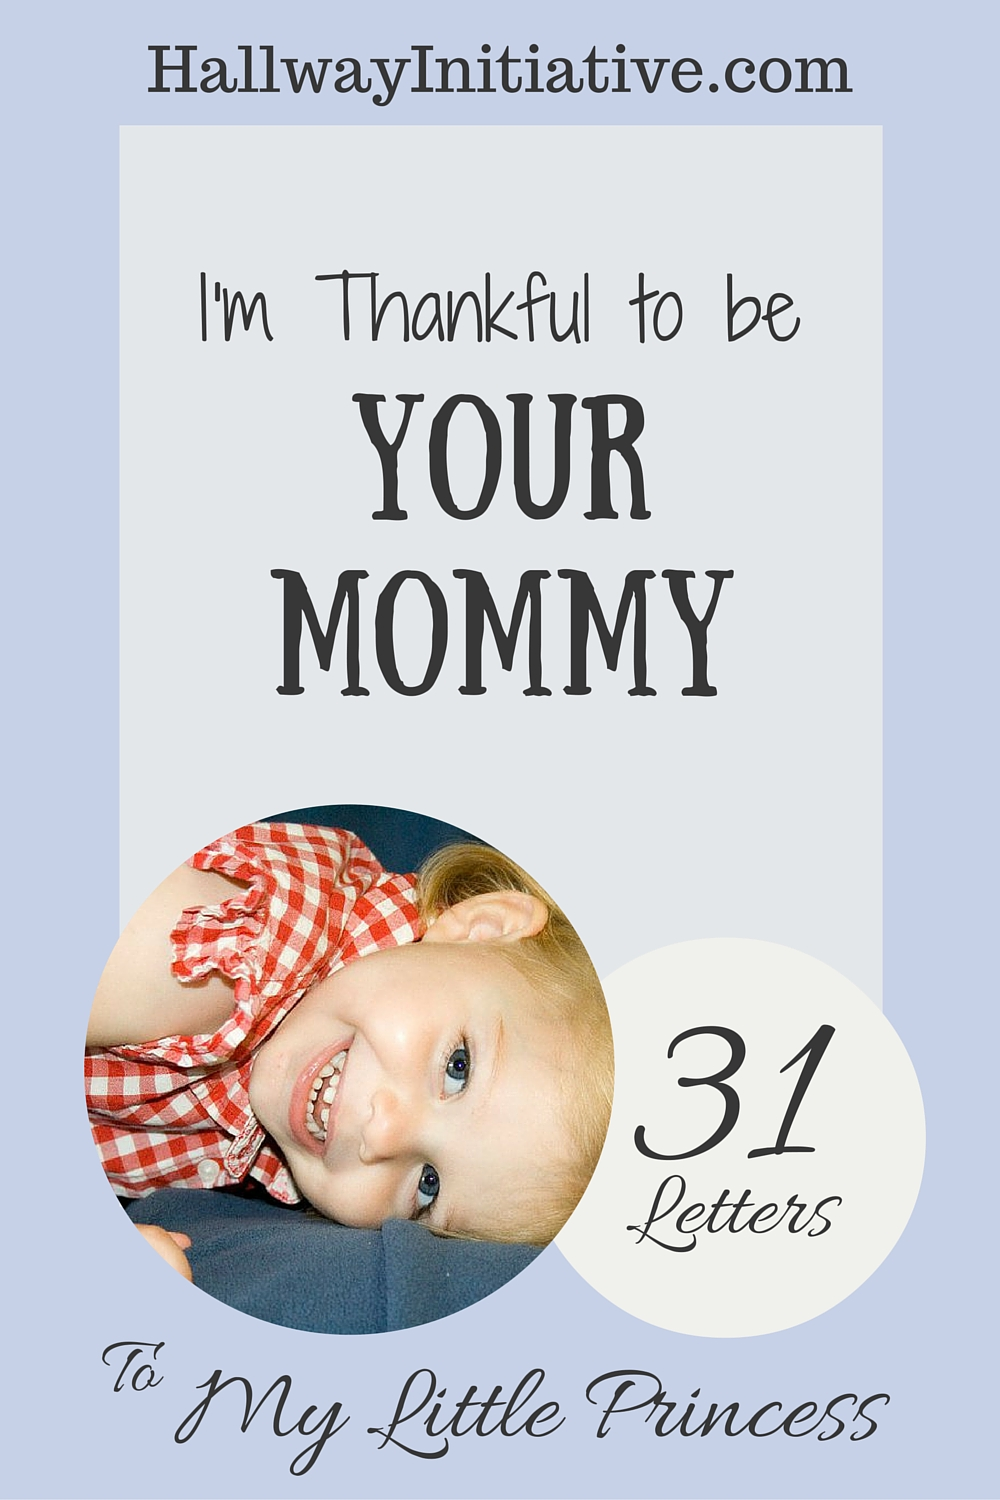 I'm thankful to be your mommy